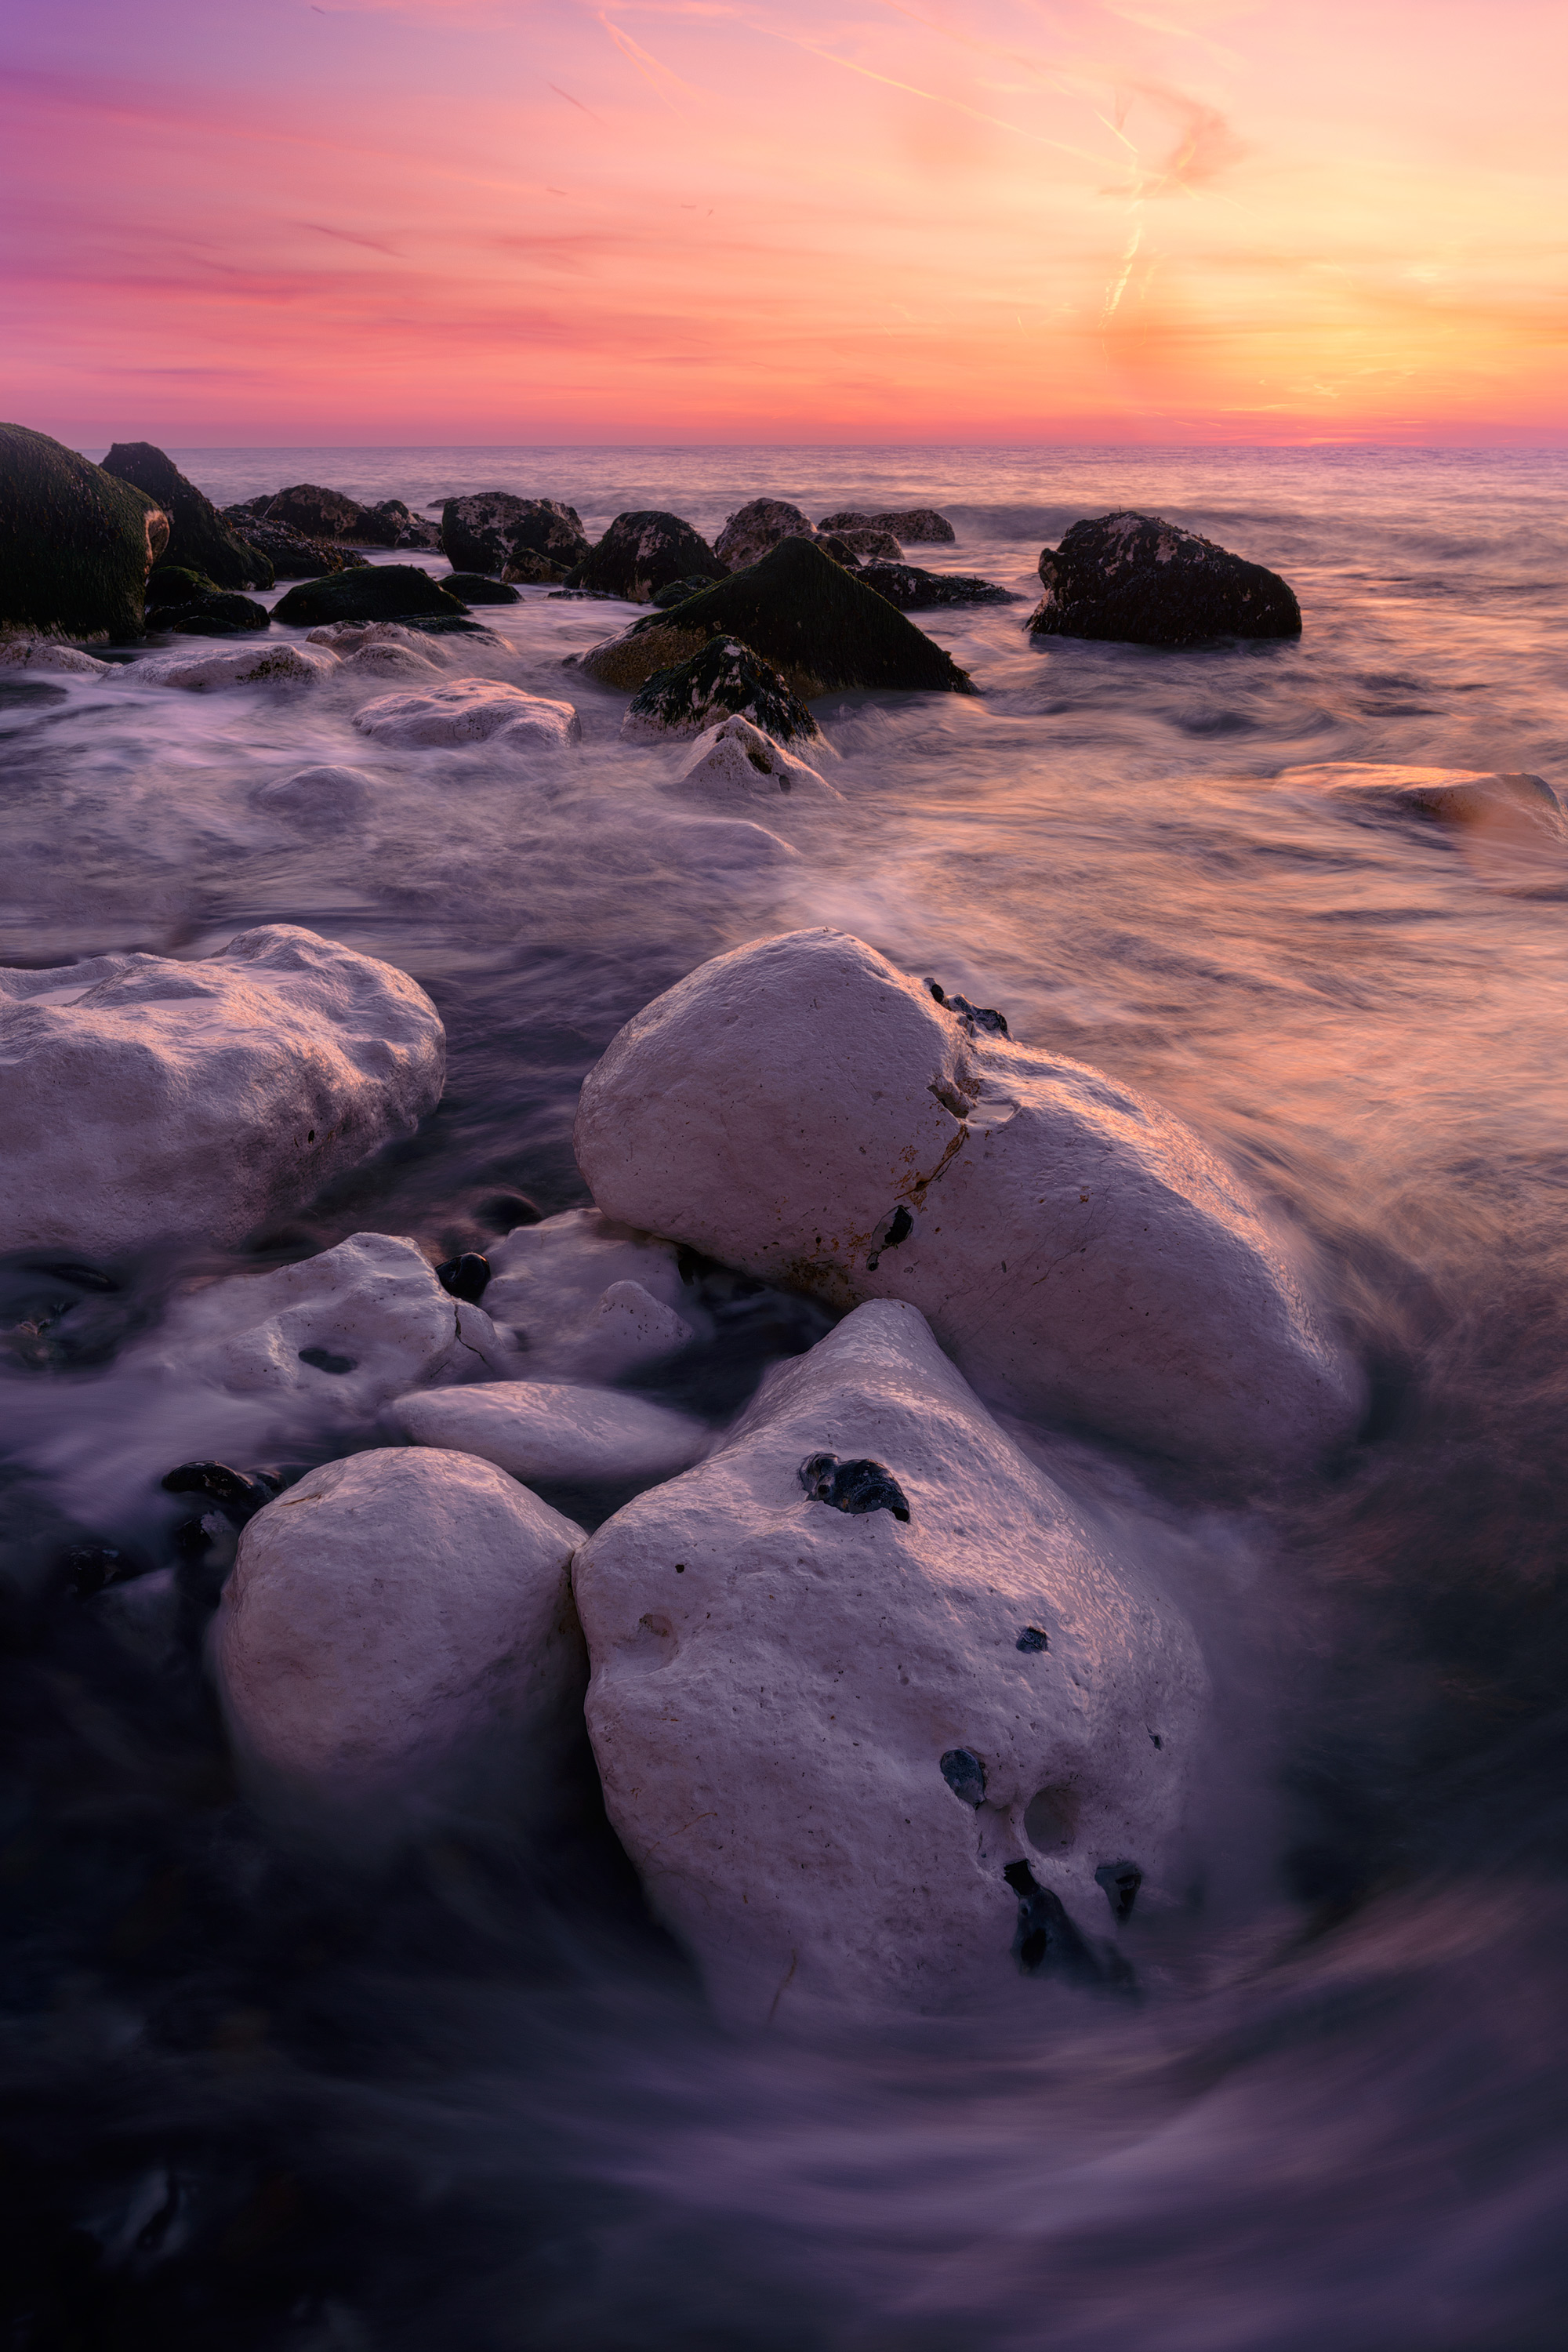 The Pastel shades of dawn